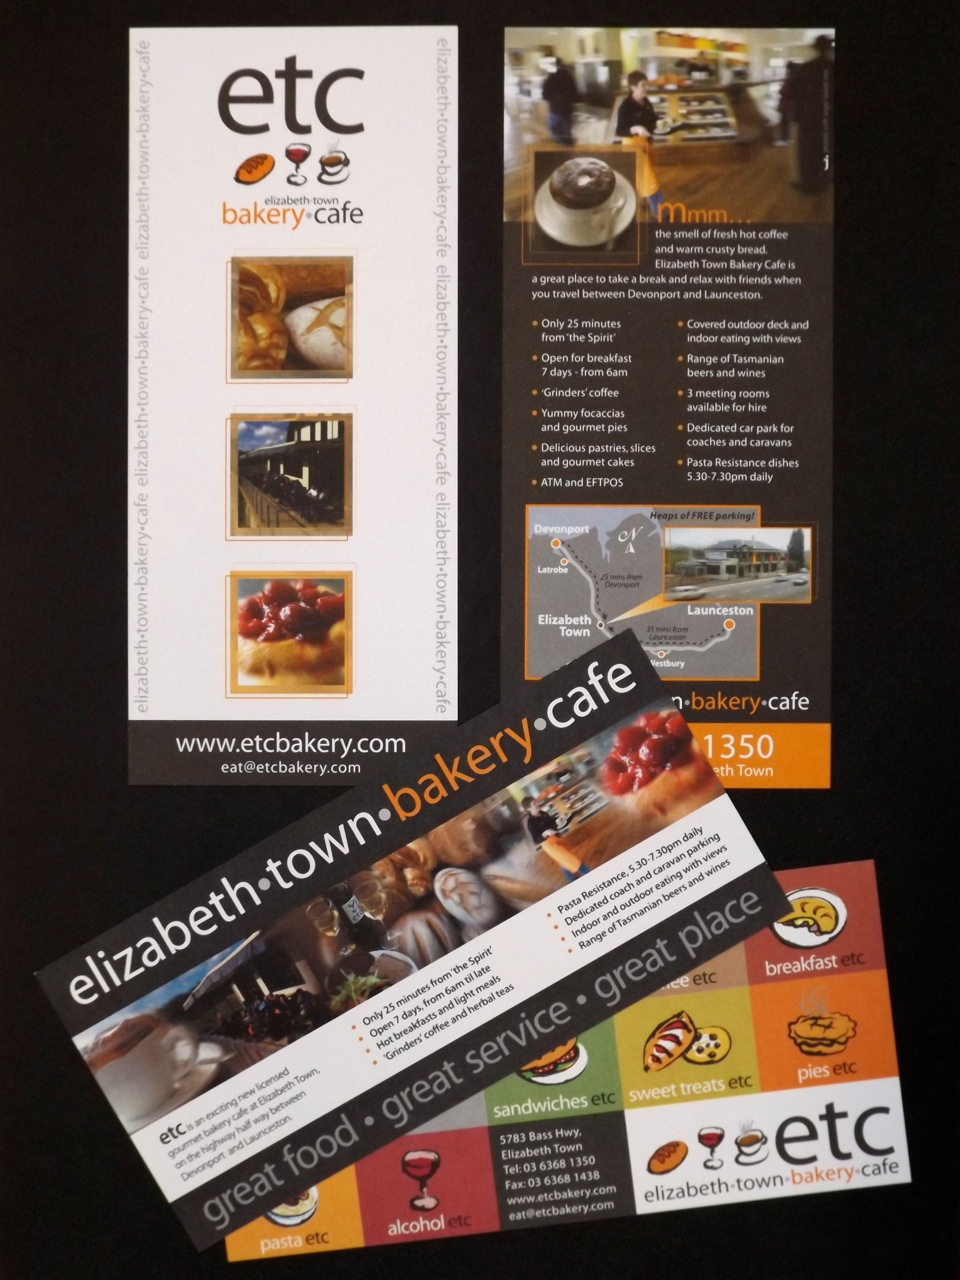 ETC - Flyers, signage, banners, loyalty cards, website and photoshopping.